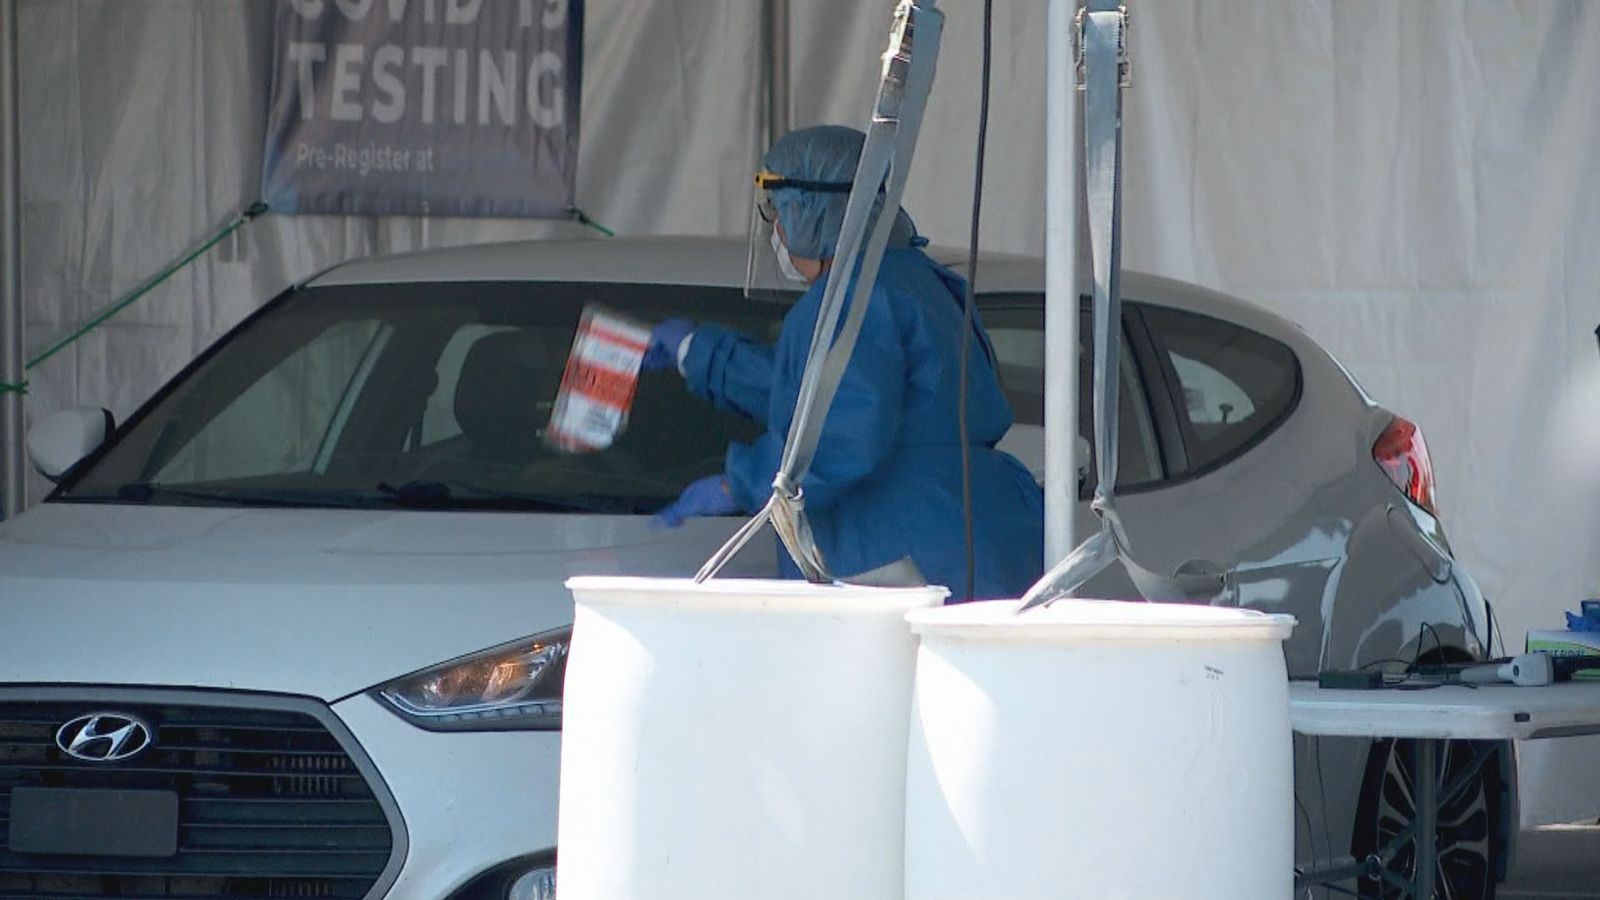 An audit published Wednesday looks at issues with COVID-19 testing in Utah, including the time it takes to get test results. (Photo: KUTV)